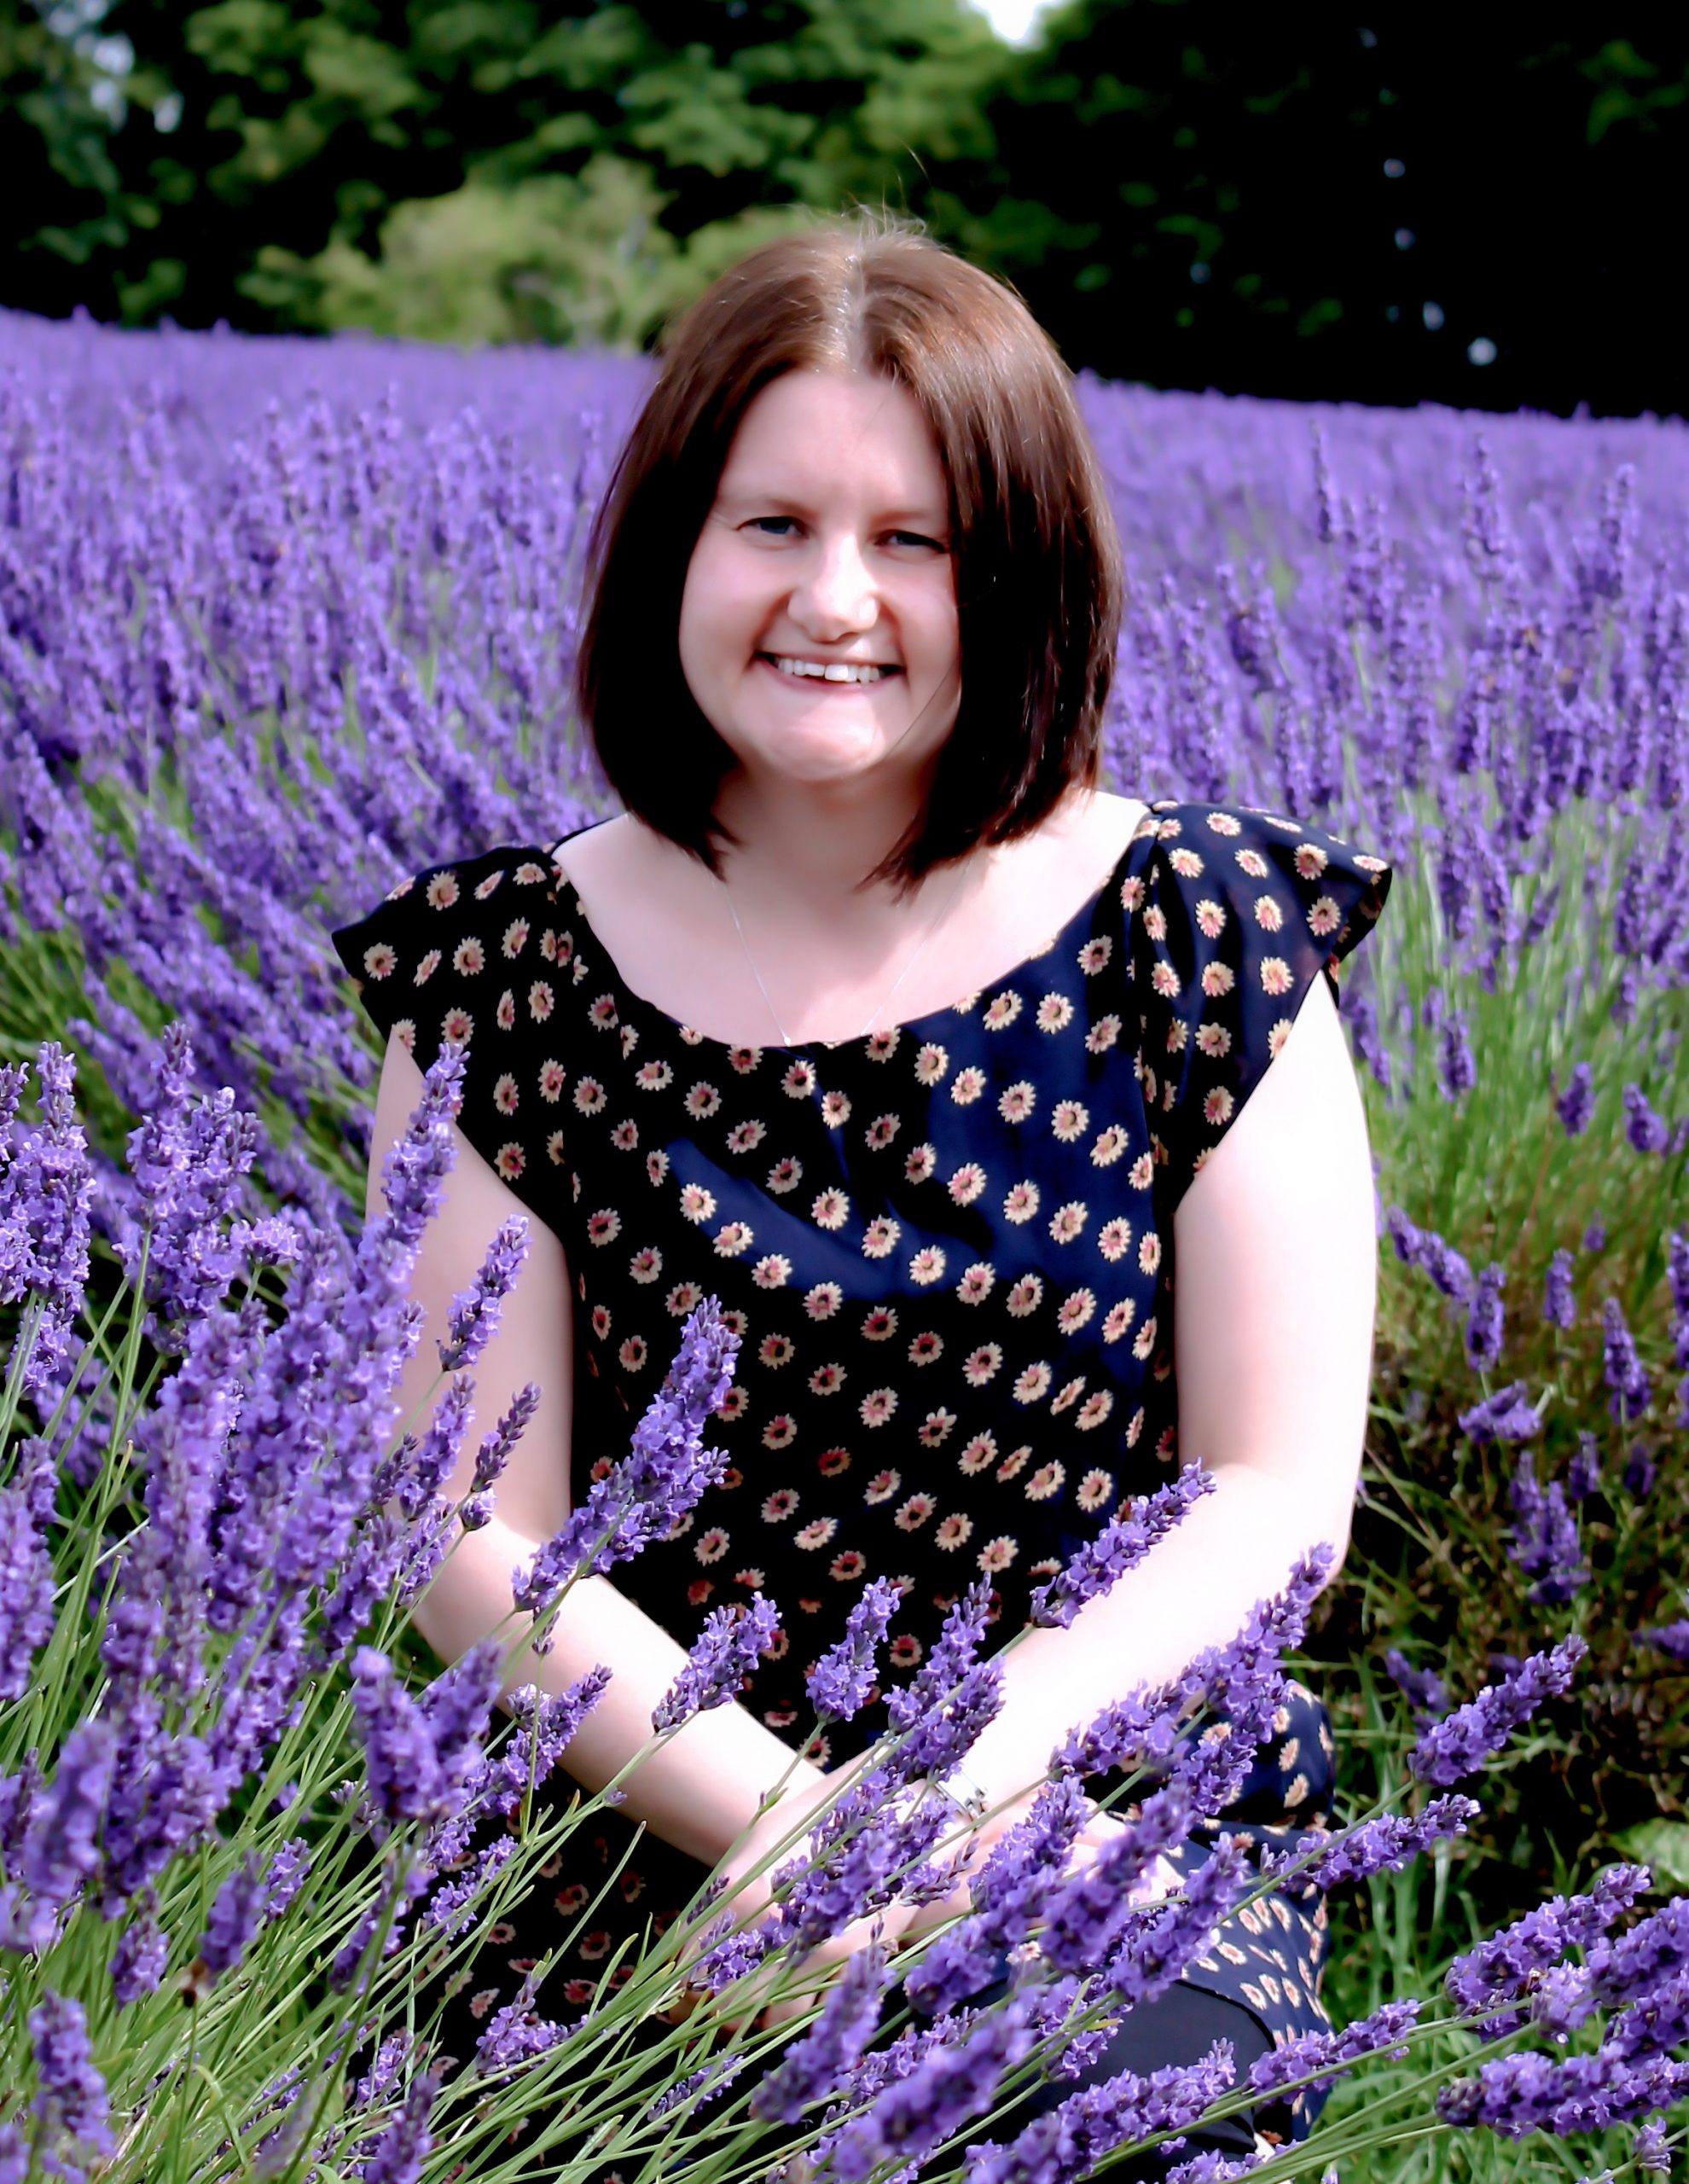 Samantha dobson wearing a navey dress with sunflowers on, sitting in a lavender field.